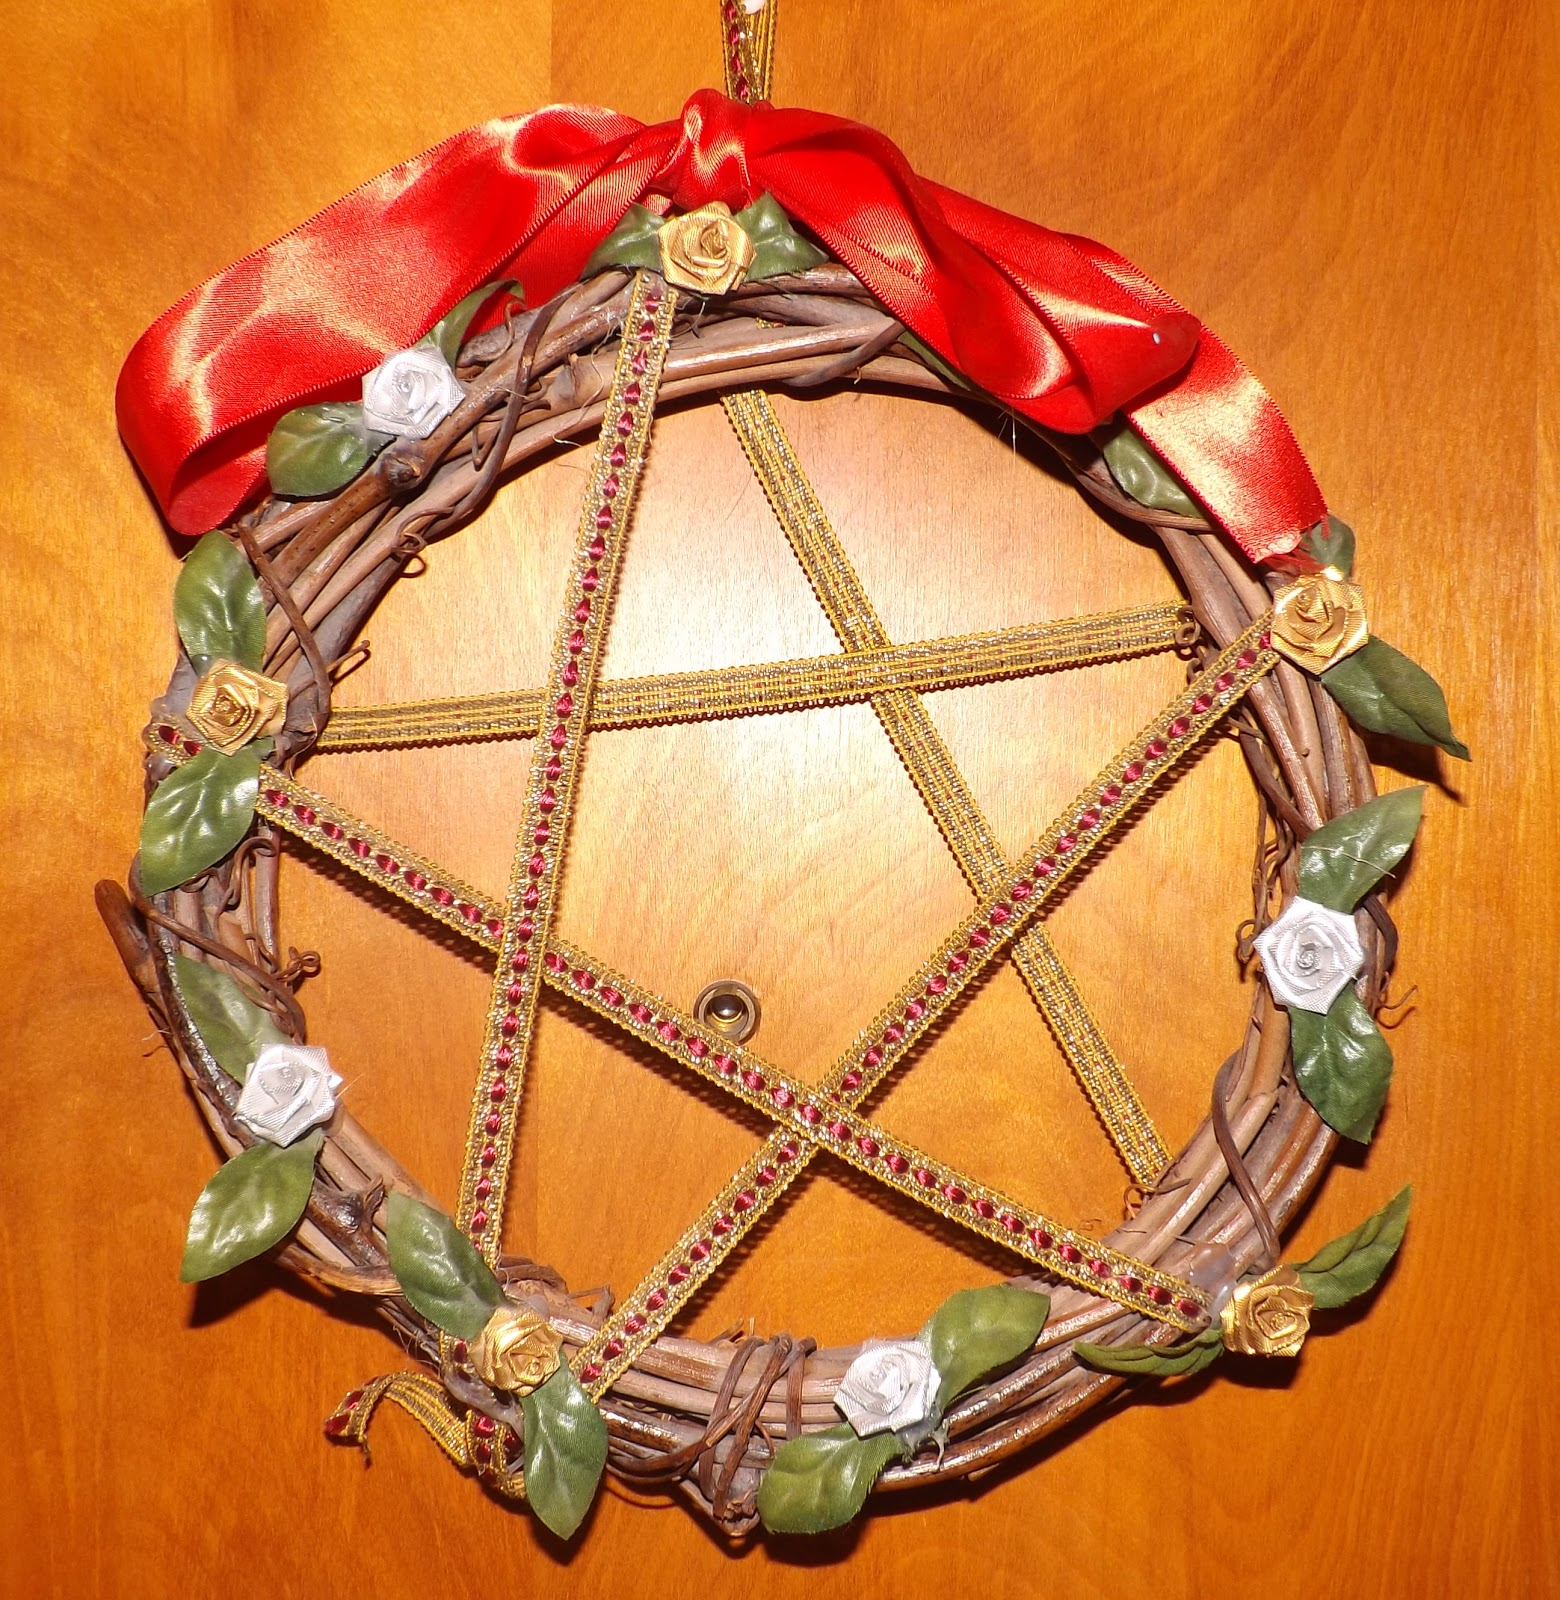 The Wiccan Life: Yule Decorations